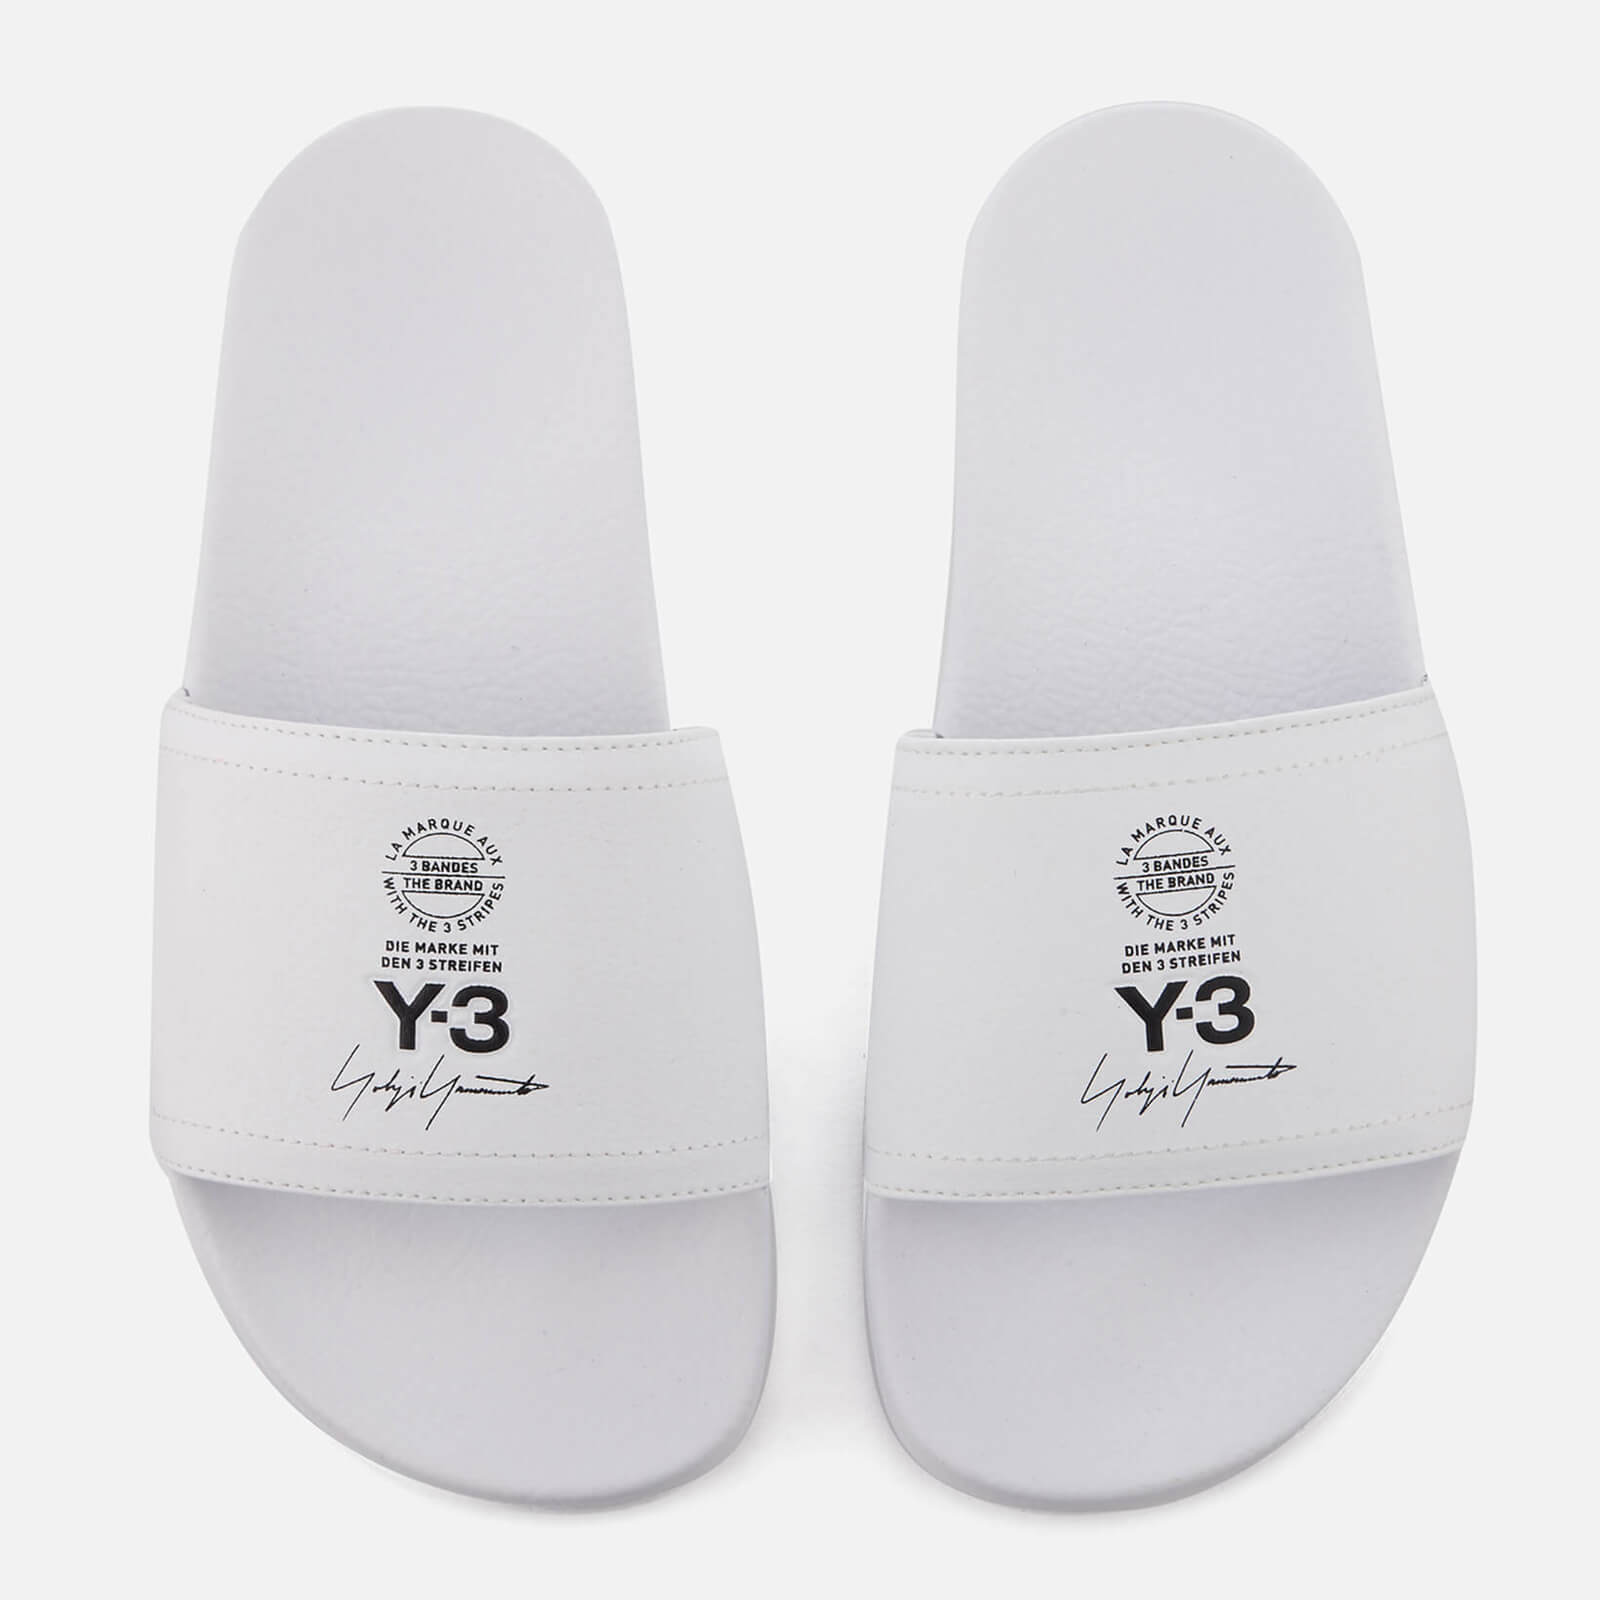 4bdb7ac58c8f92 Y-3 Adilette Slides - White - Free UK Delivery over £50